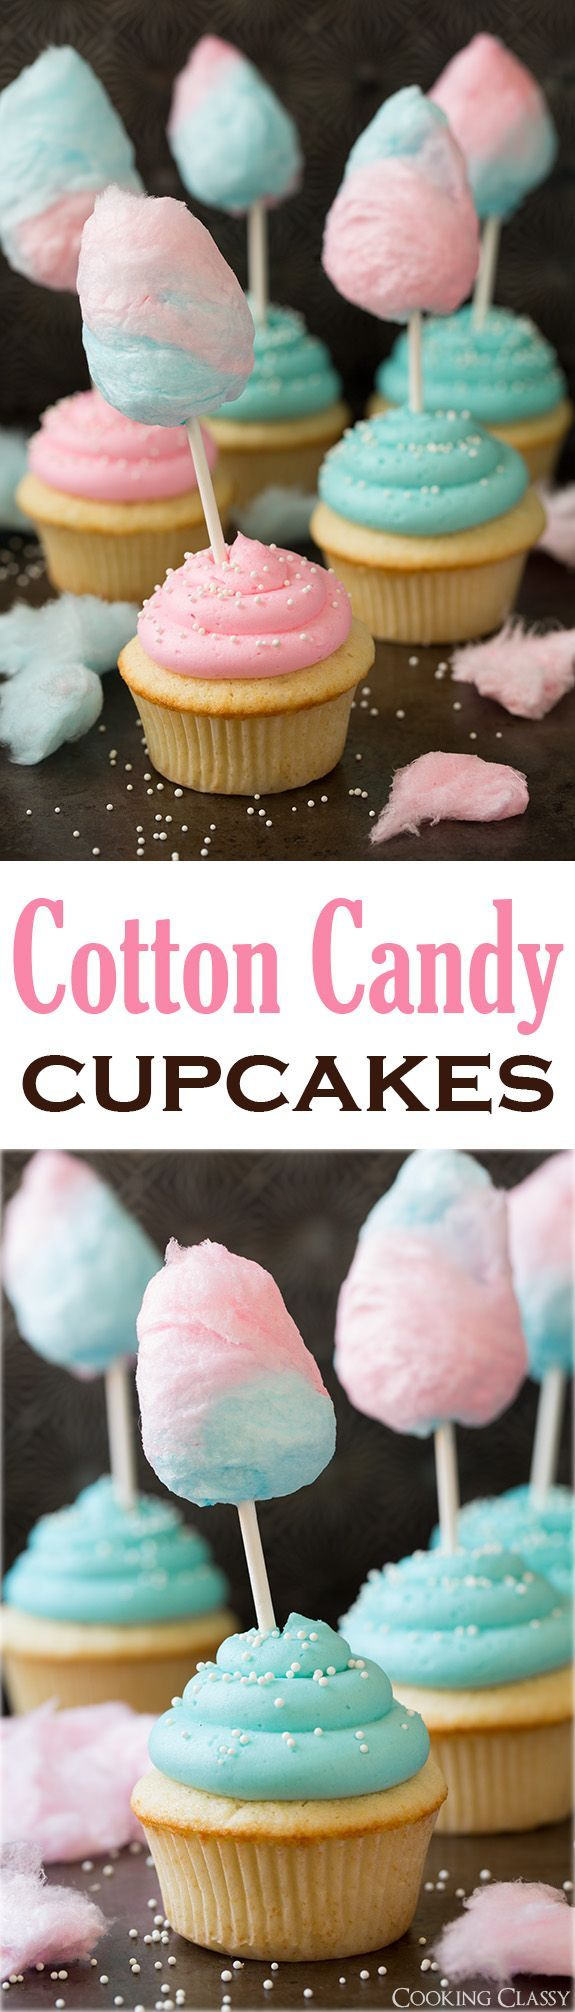 Cotton Candy Cupcakes - these are so fun! My kids loved them! The cupcakes are so soft and fluffy and the buttercream is melt-in-your-mouth amazing!: from @cookingclassy